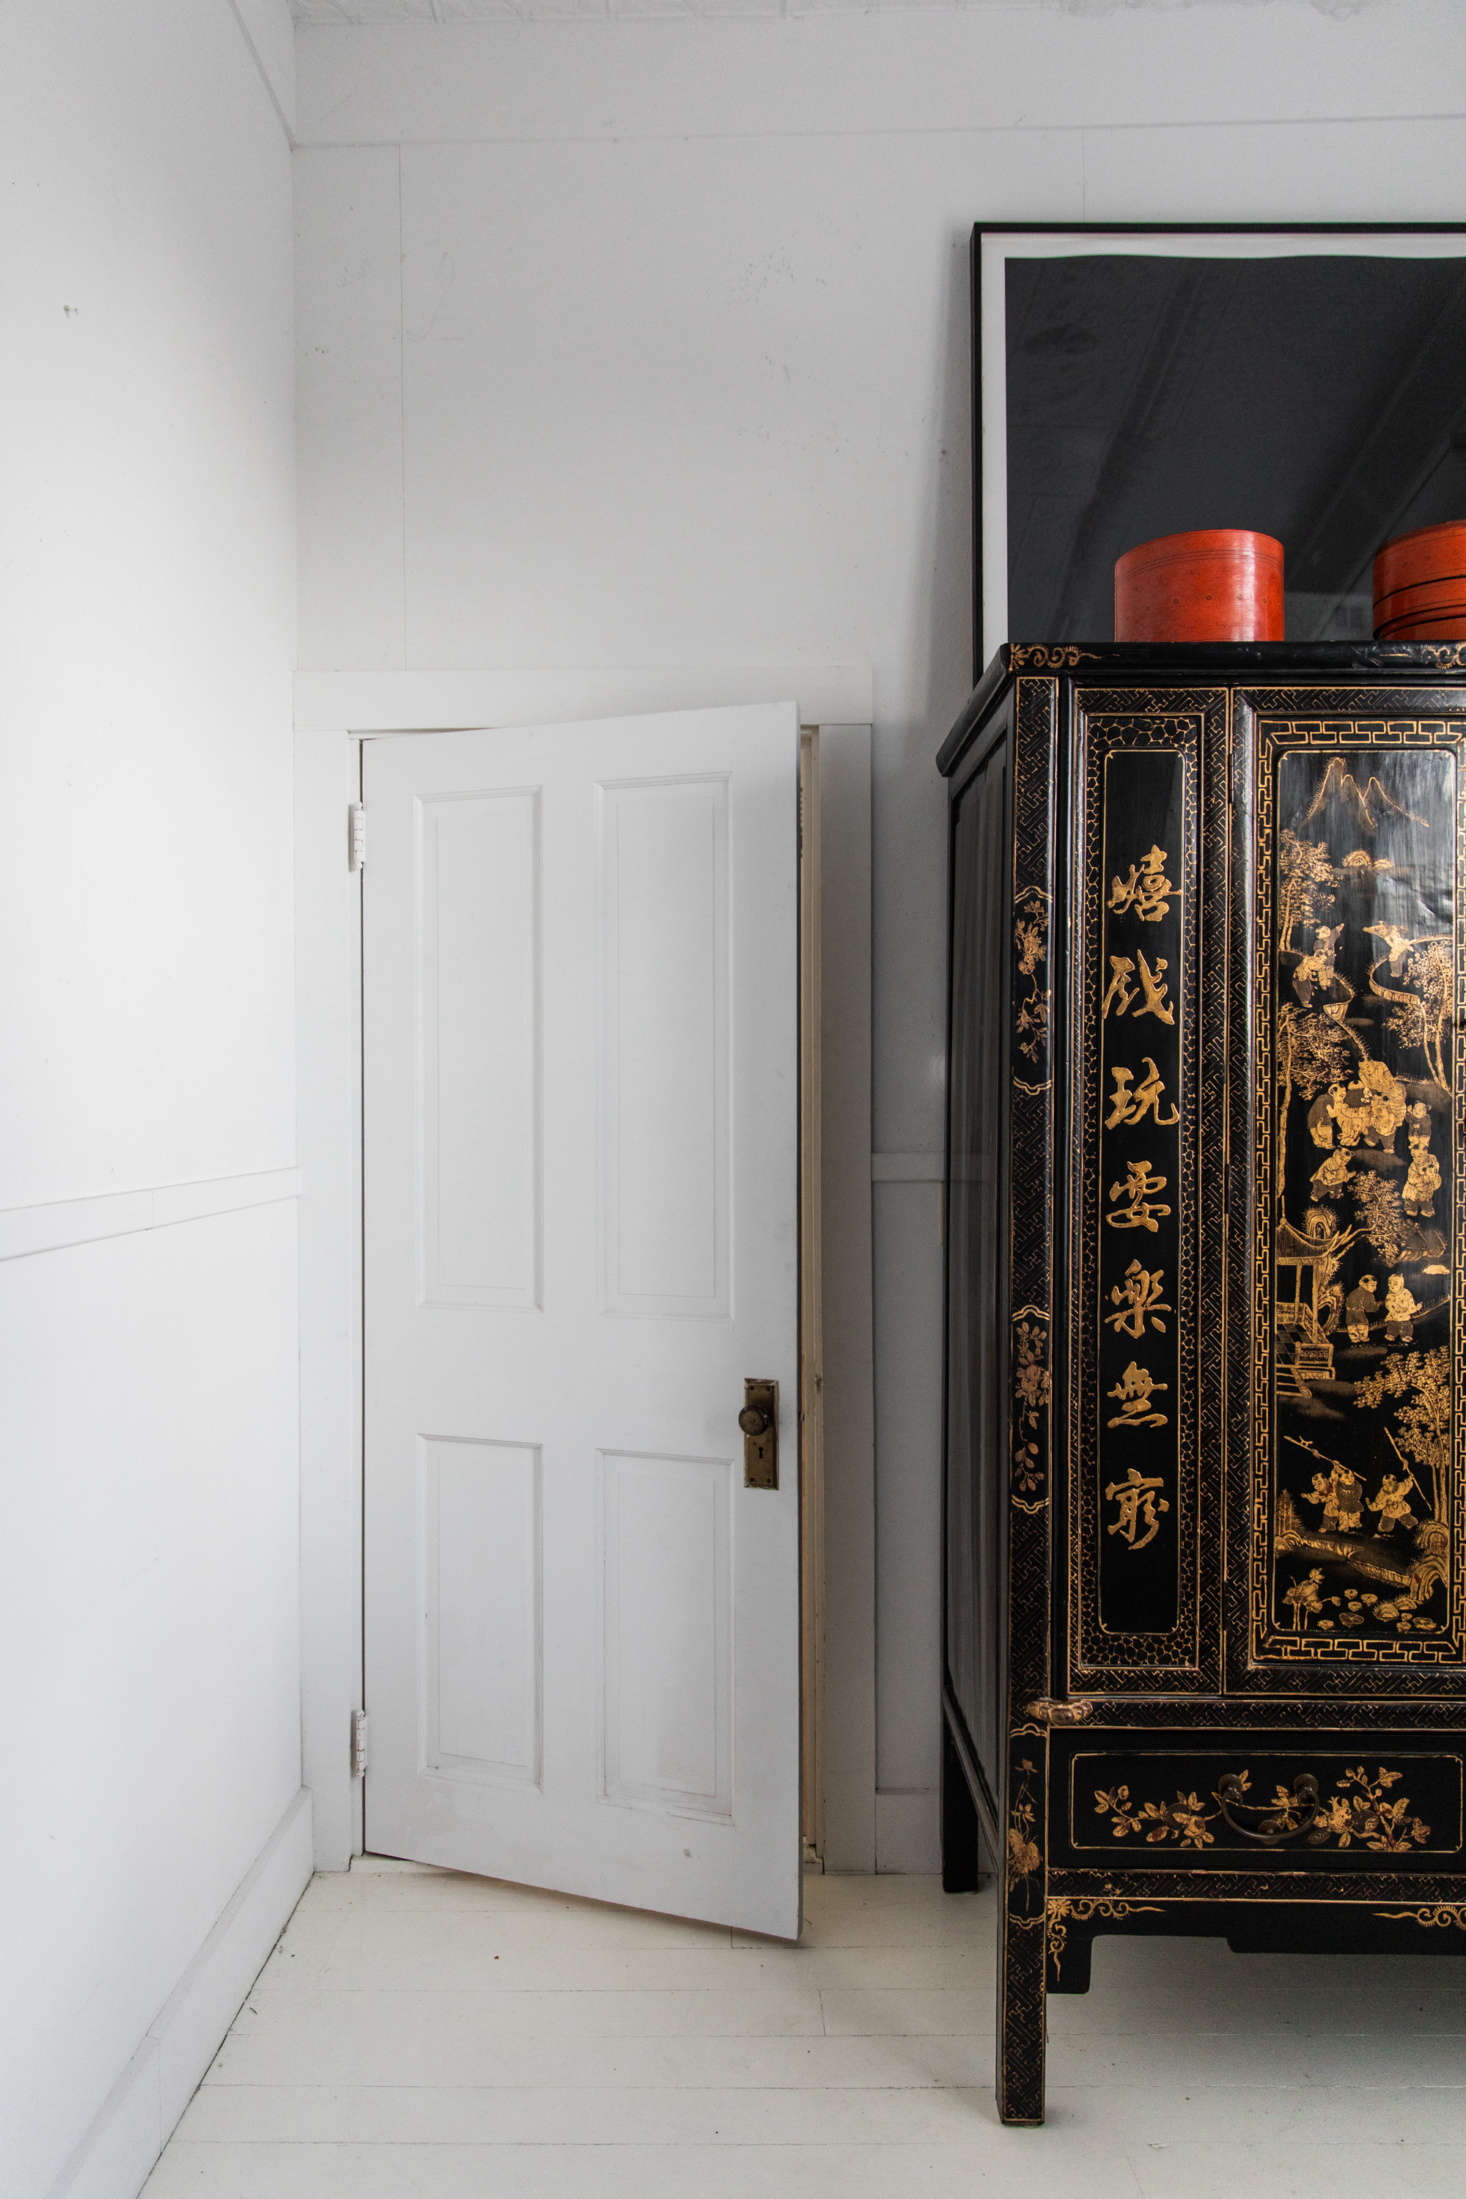 At the foot of the bed is a black lacquer Chinese armoire that McNeil found in Lincolnville. &#8